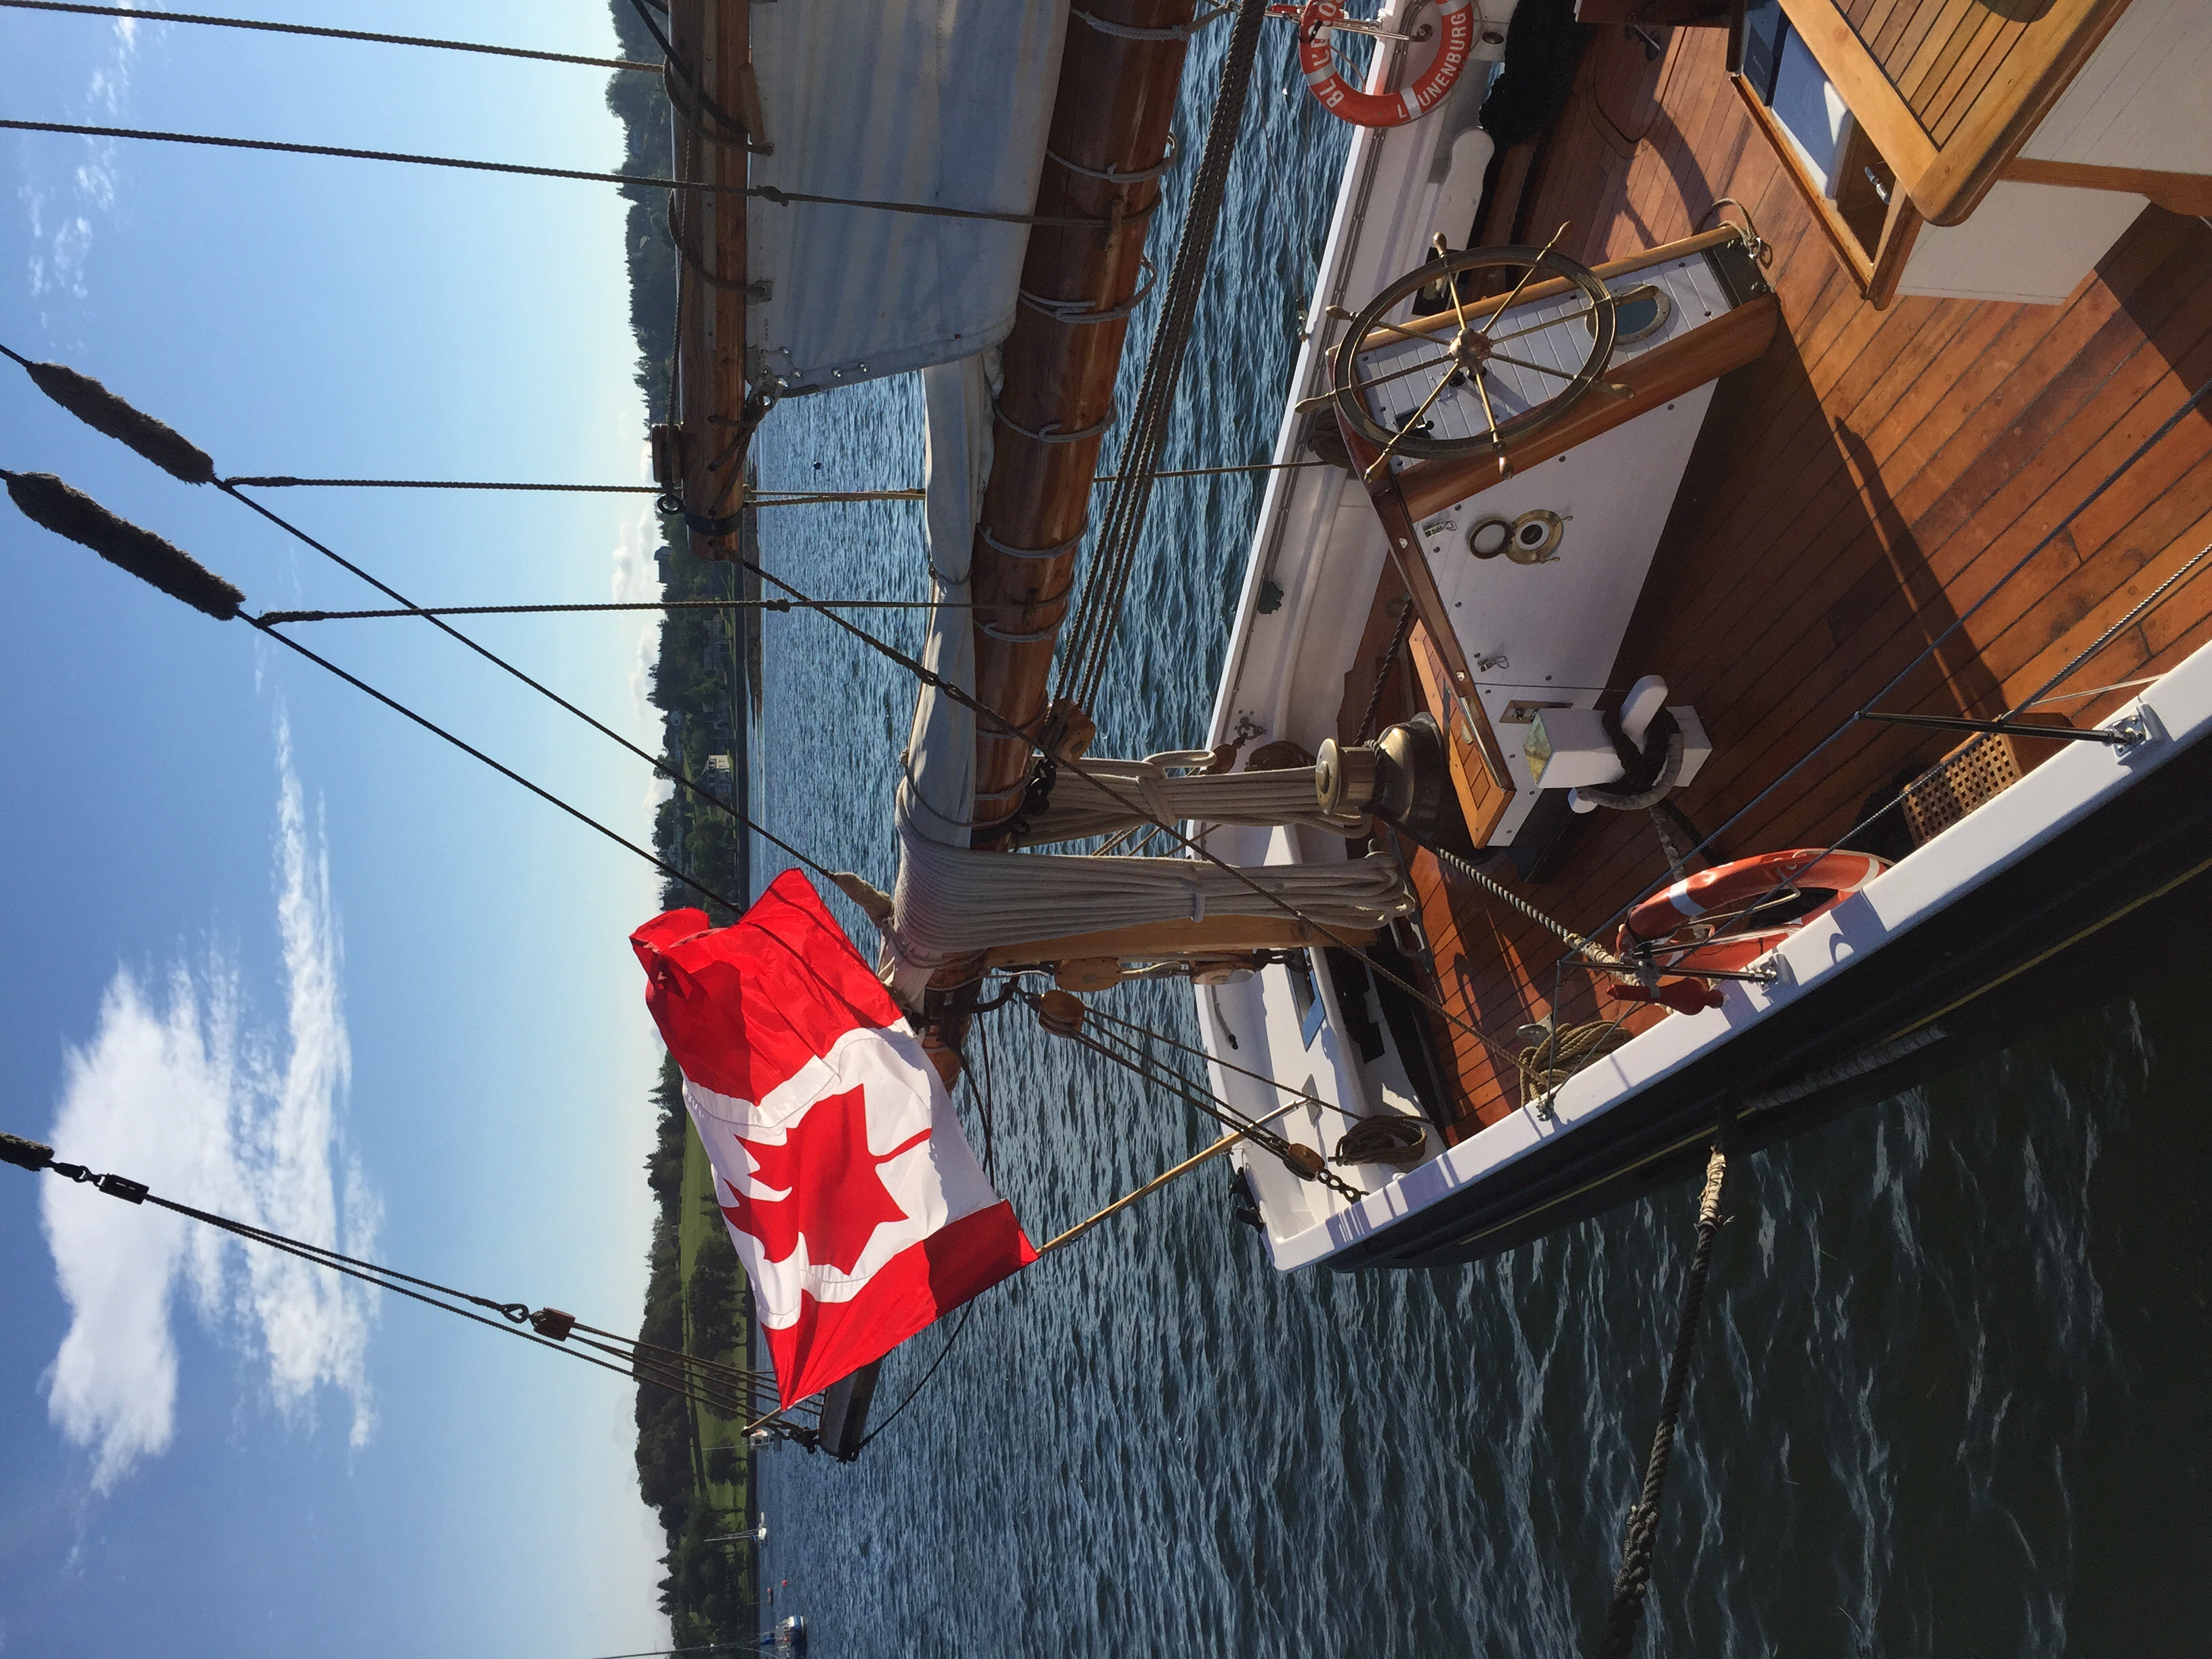 The Blue Nose II schooner in Lunenburg.